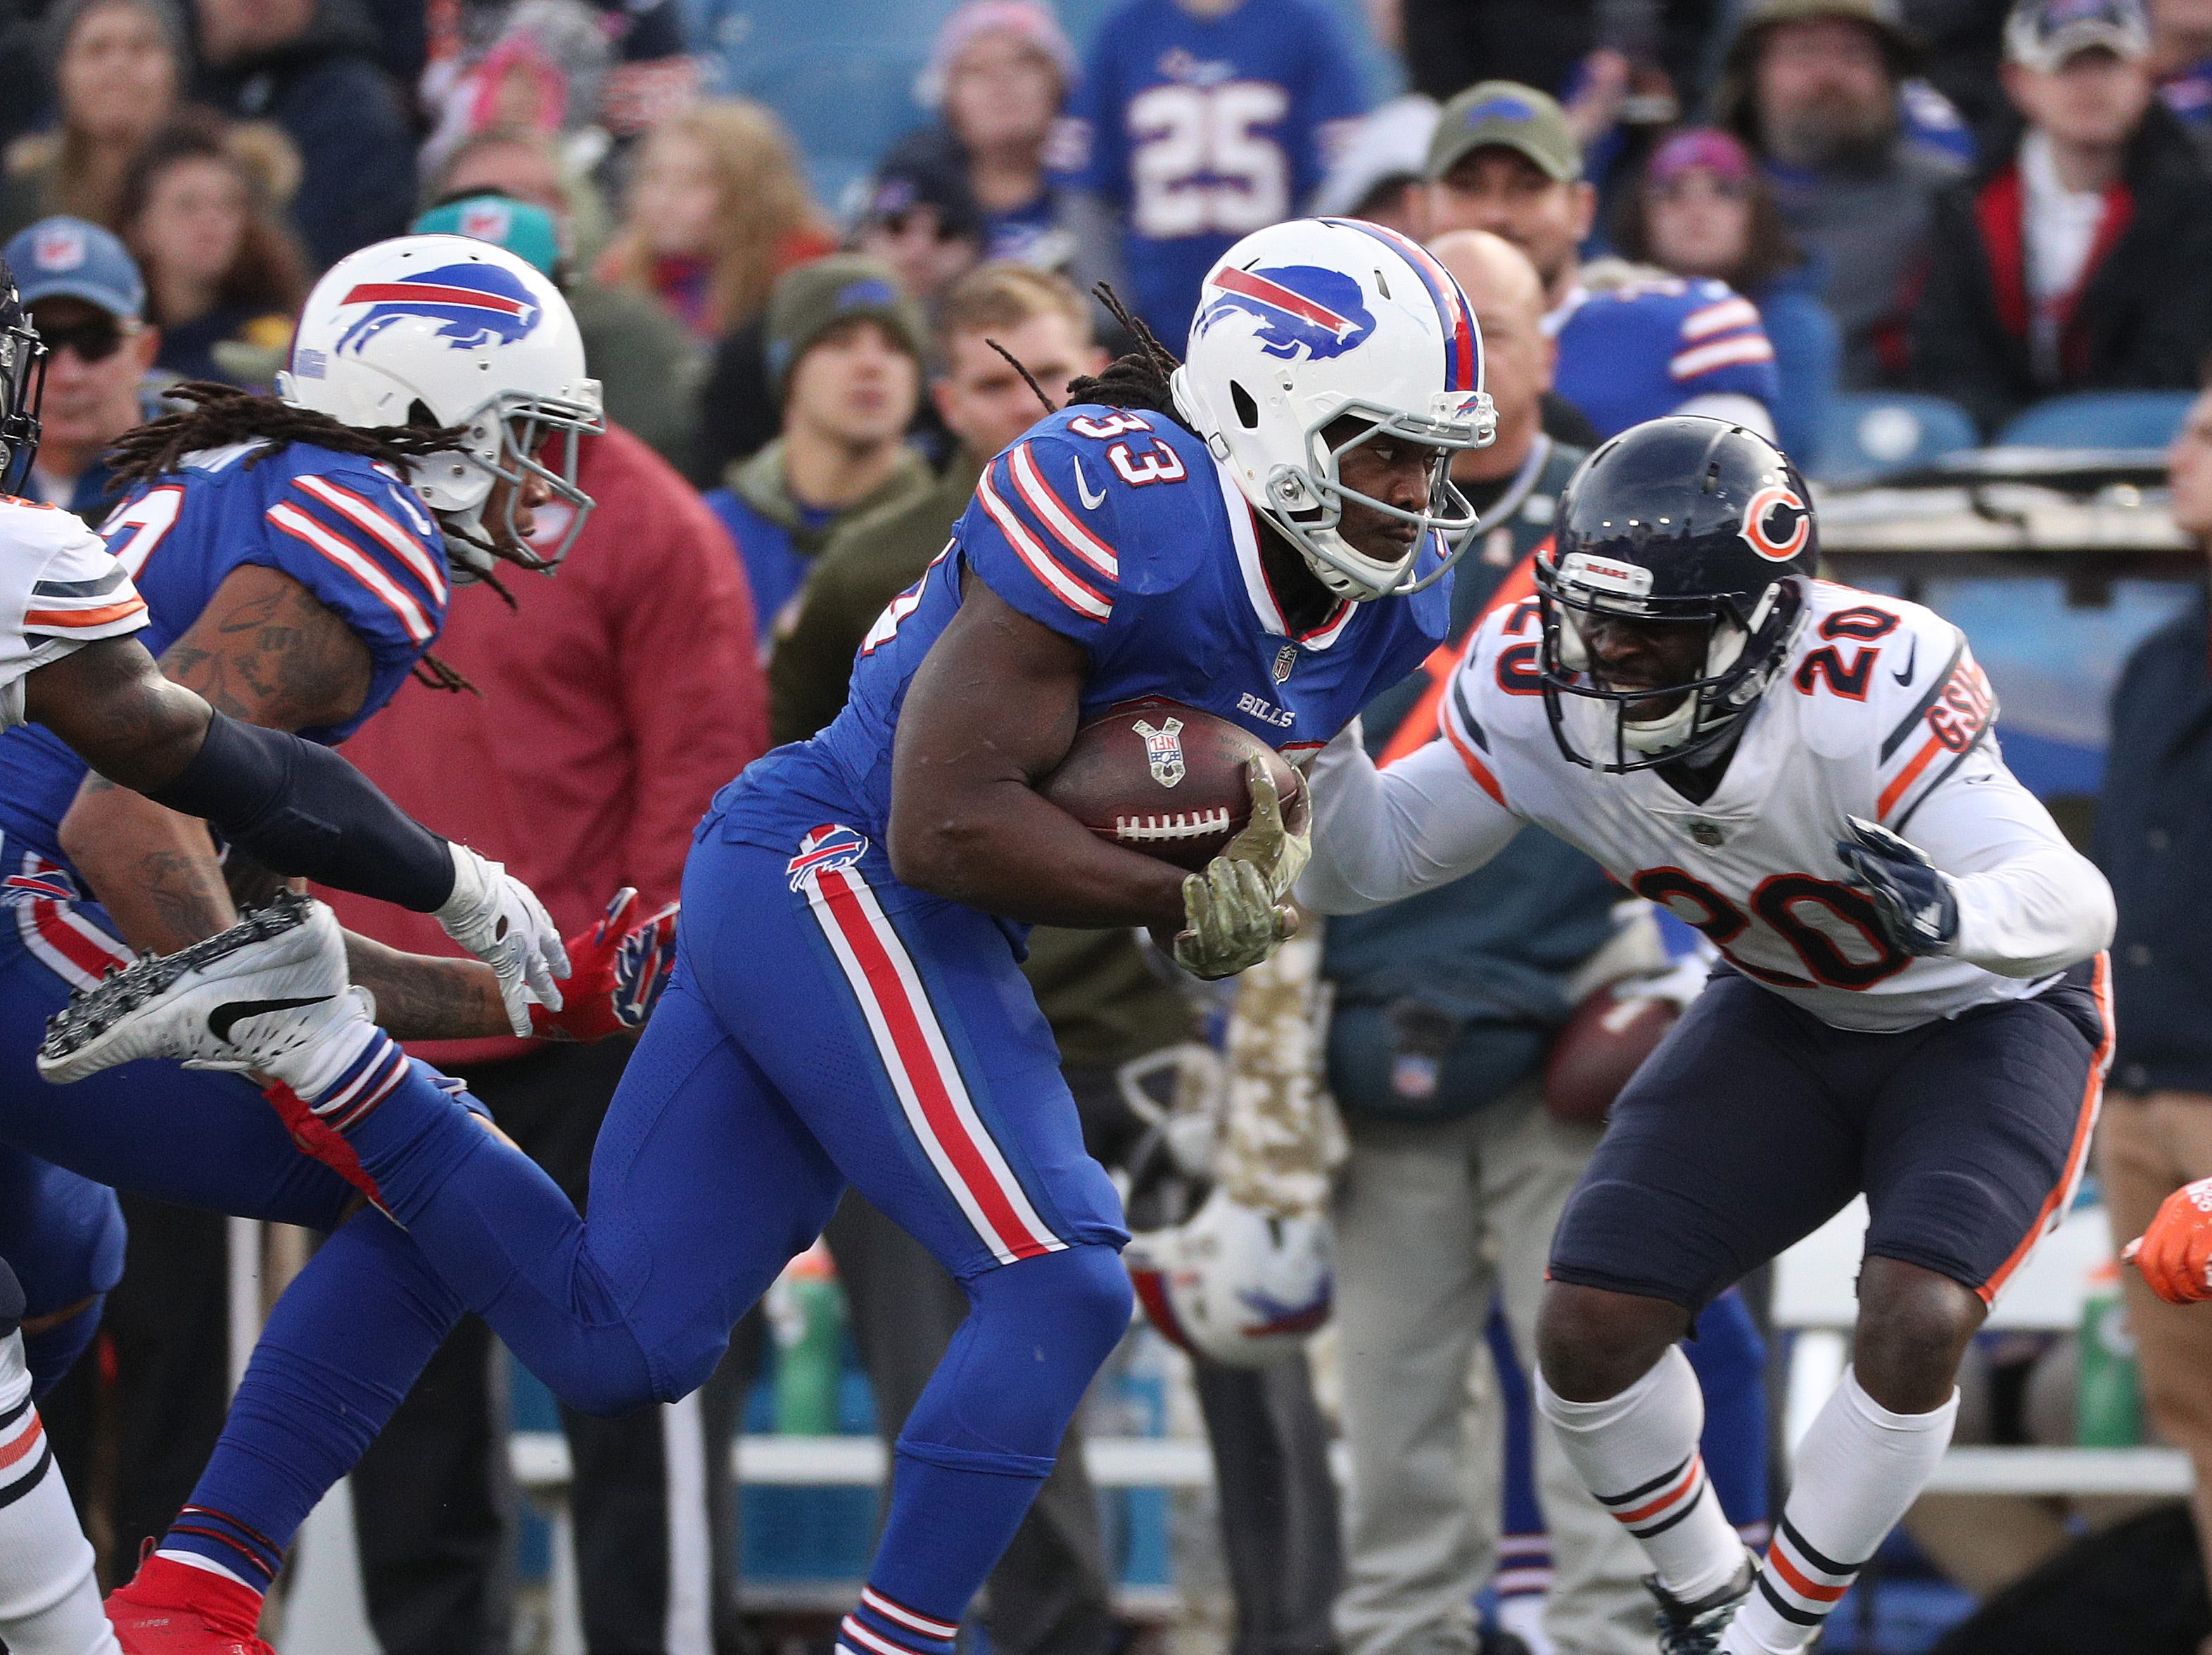 Bills running back Chris Ivory looks for running room.